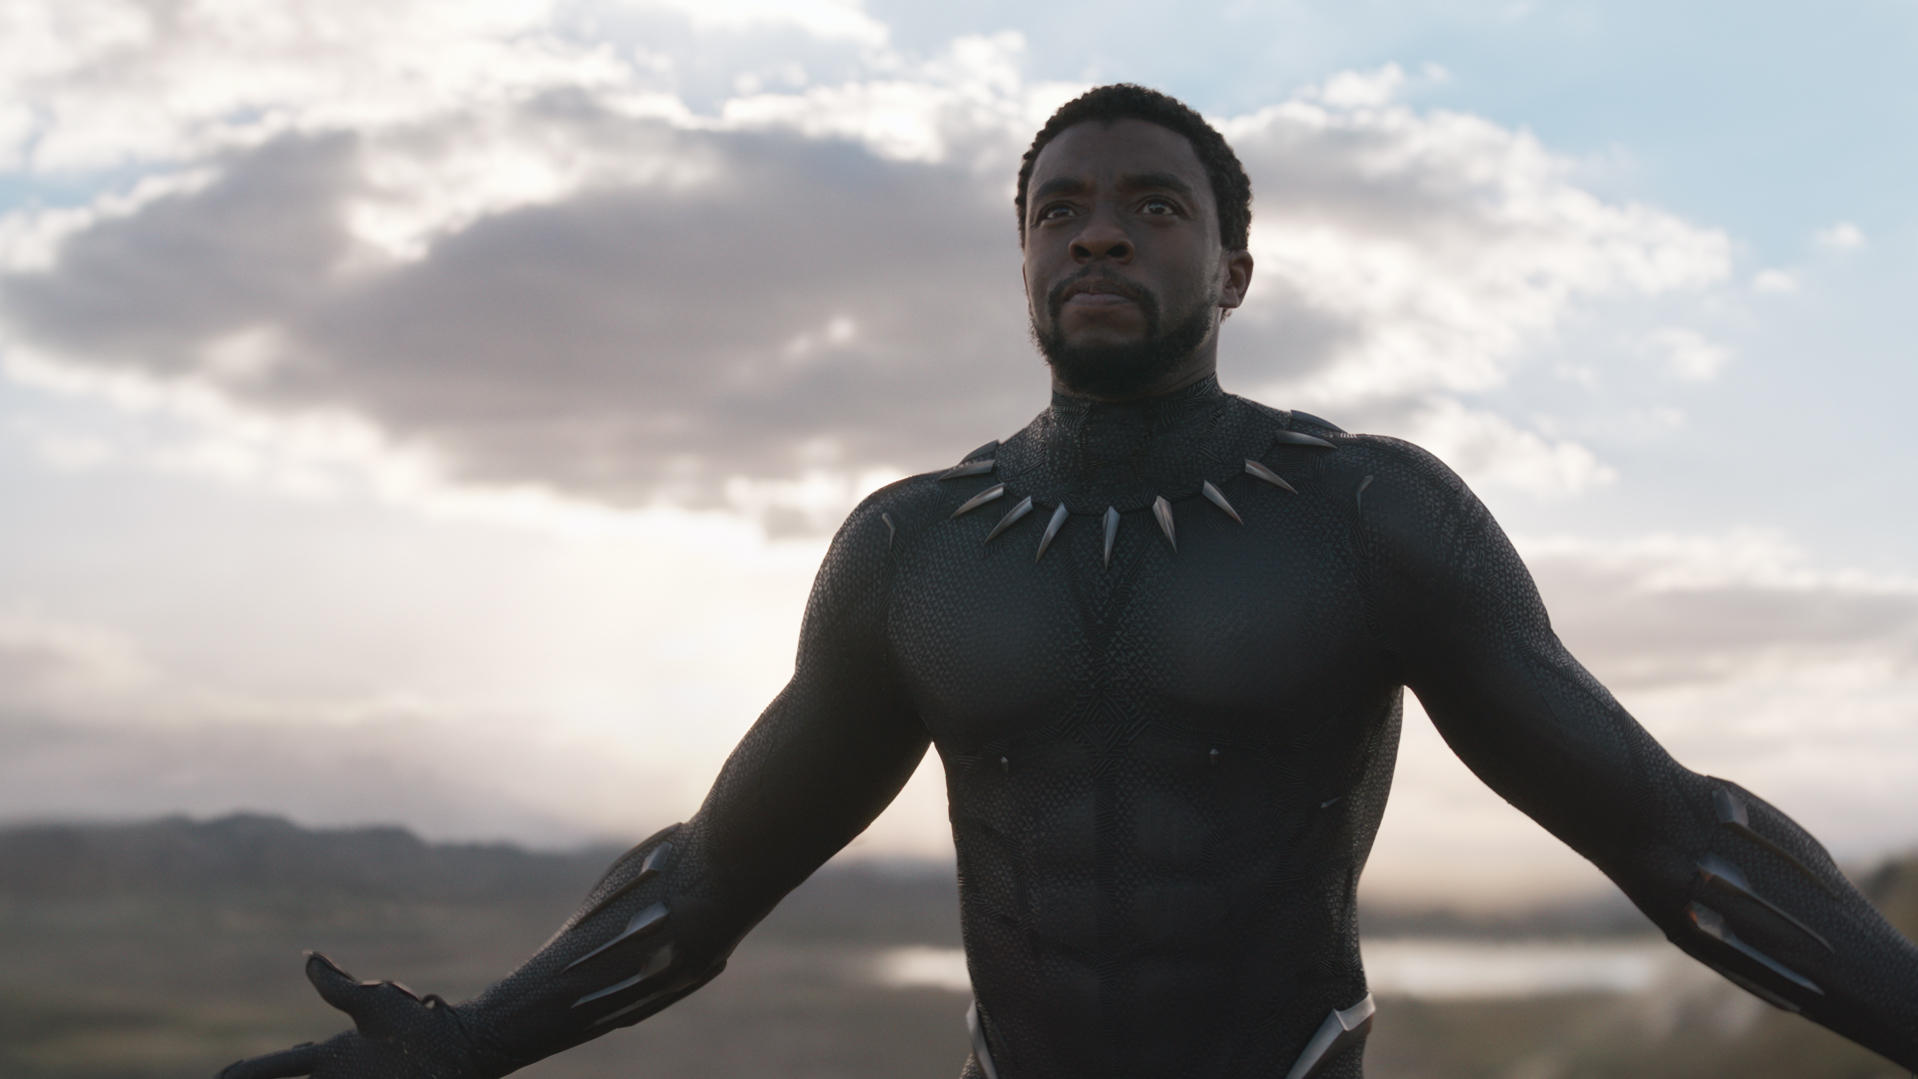 Black Panther rated 4th highest grossing movie of all time